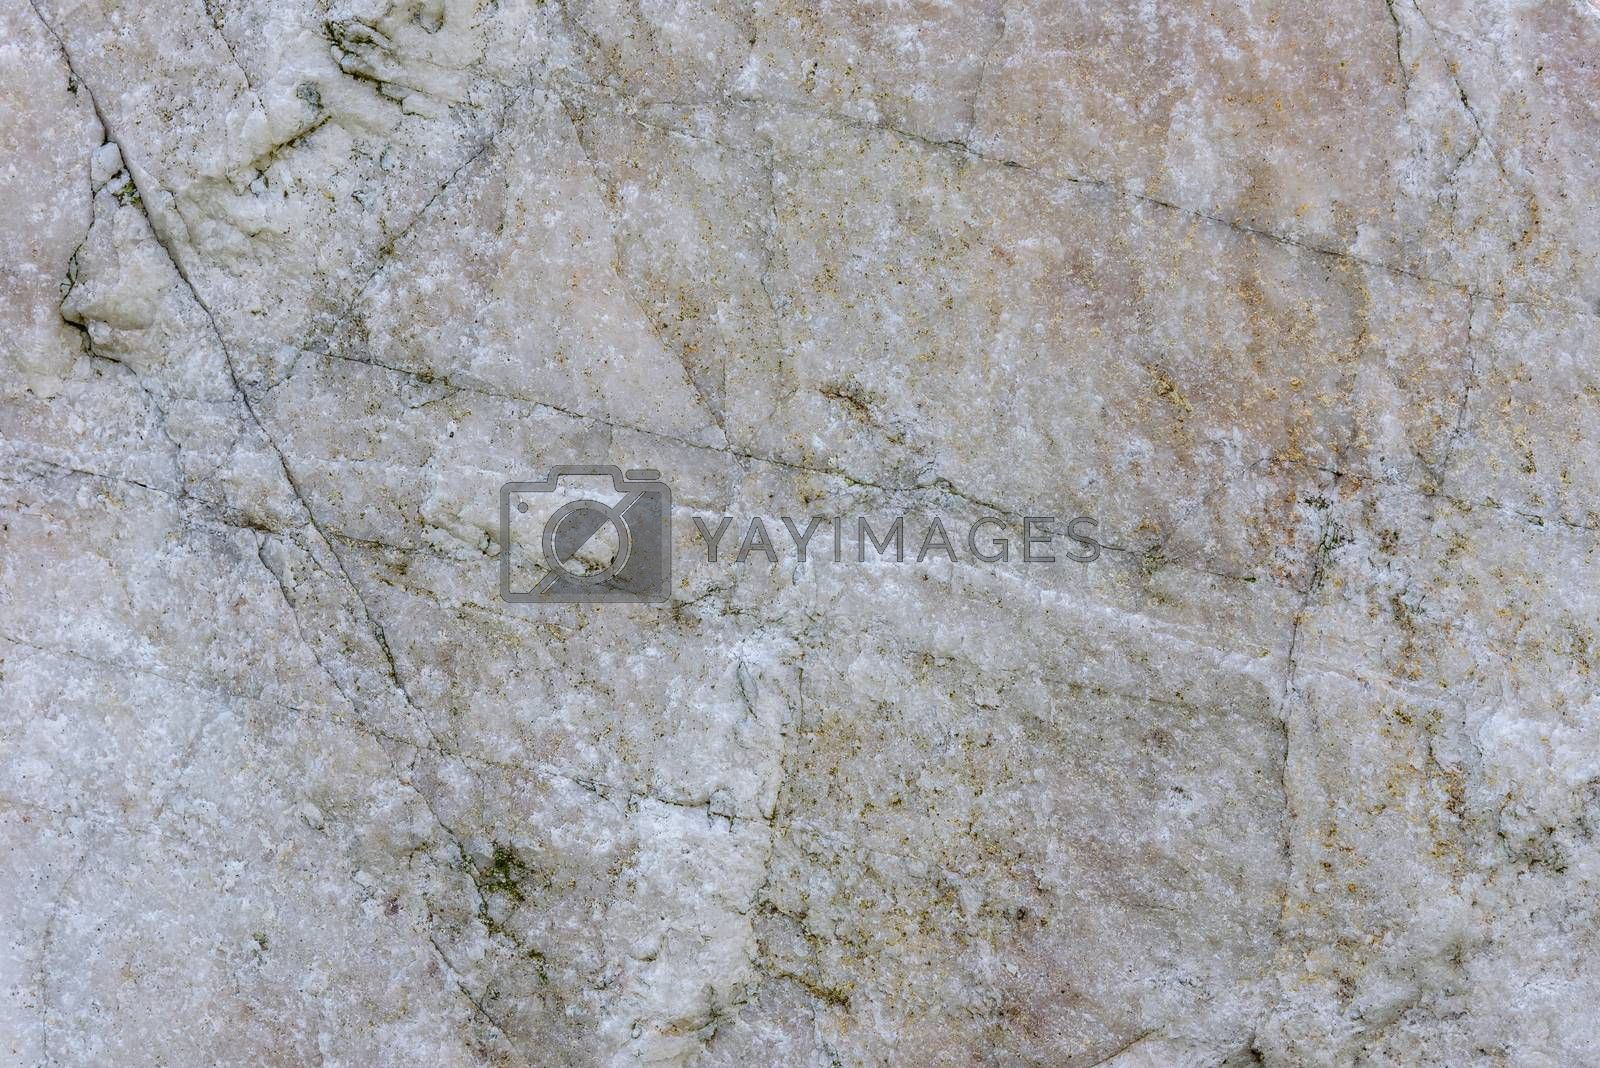 Royalty free image of Detailed stone texture or background by mkos83